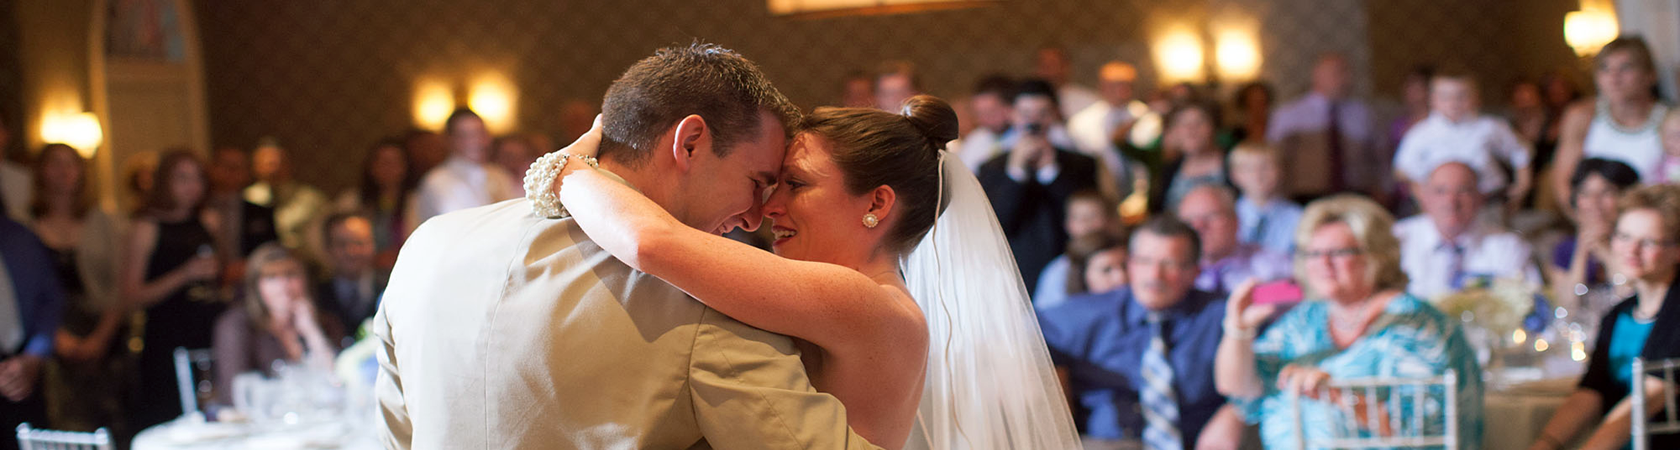 Wedding Couples First Dance Song Suggestions